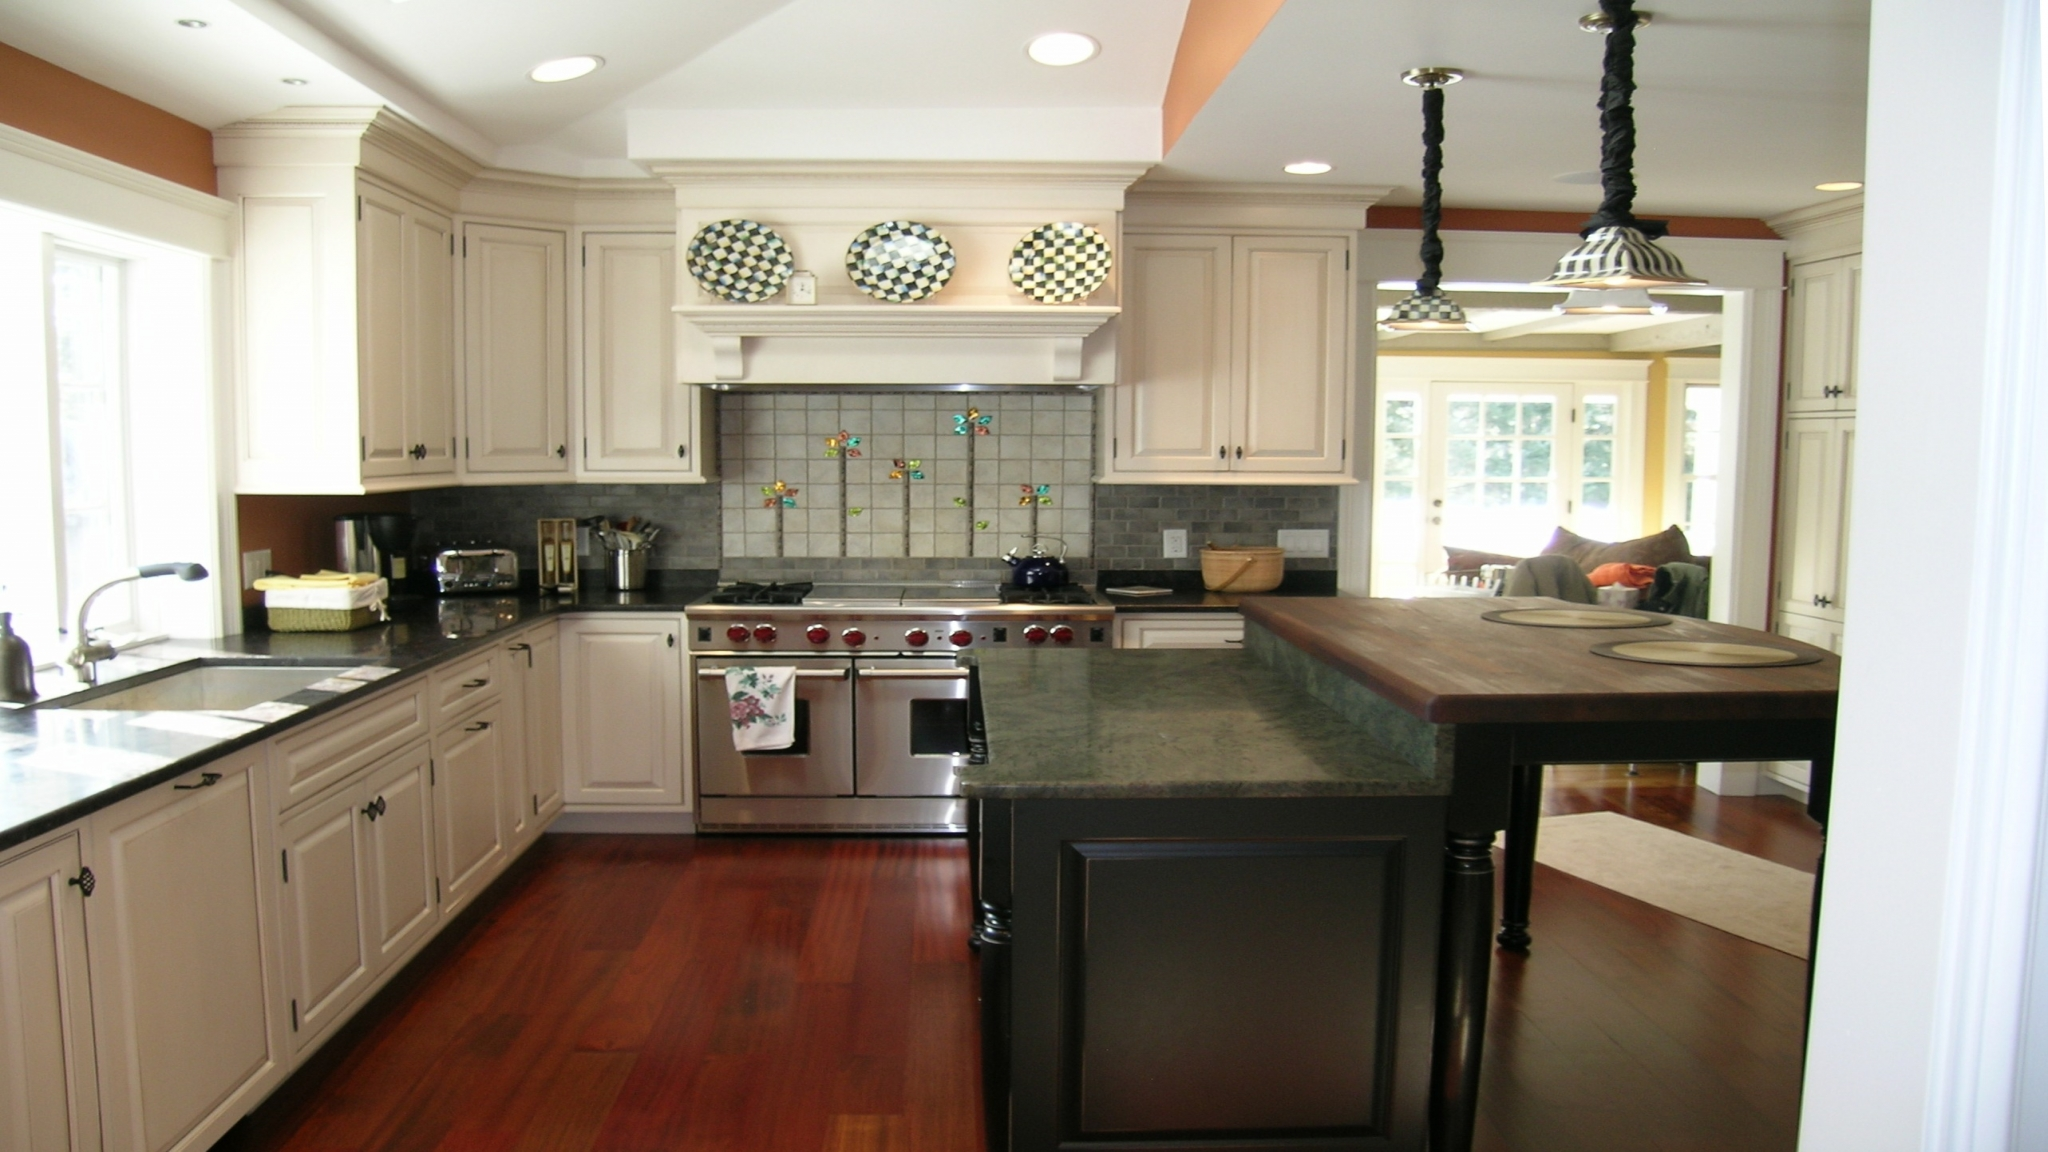 Best Place To Buy Countertops Kitchen Countertops Designs Ideas Pictures And Photos